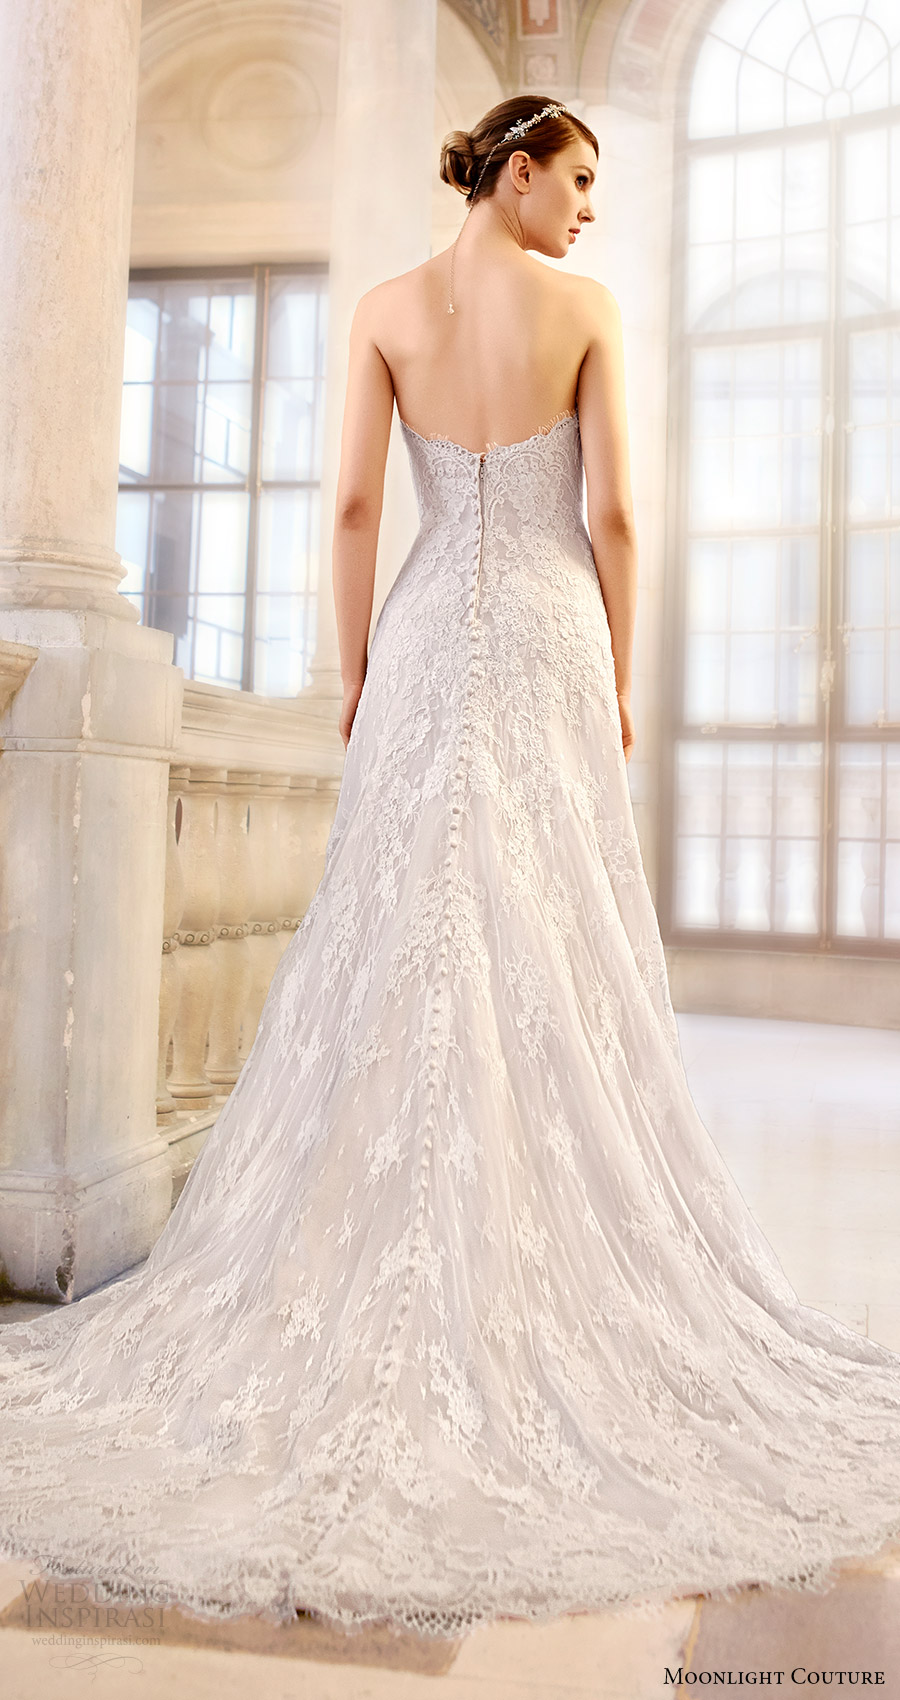 moonlight couture bridal fall 2016 strapless sweetheart aline lace wedding dress (h1313) bv train